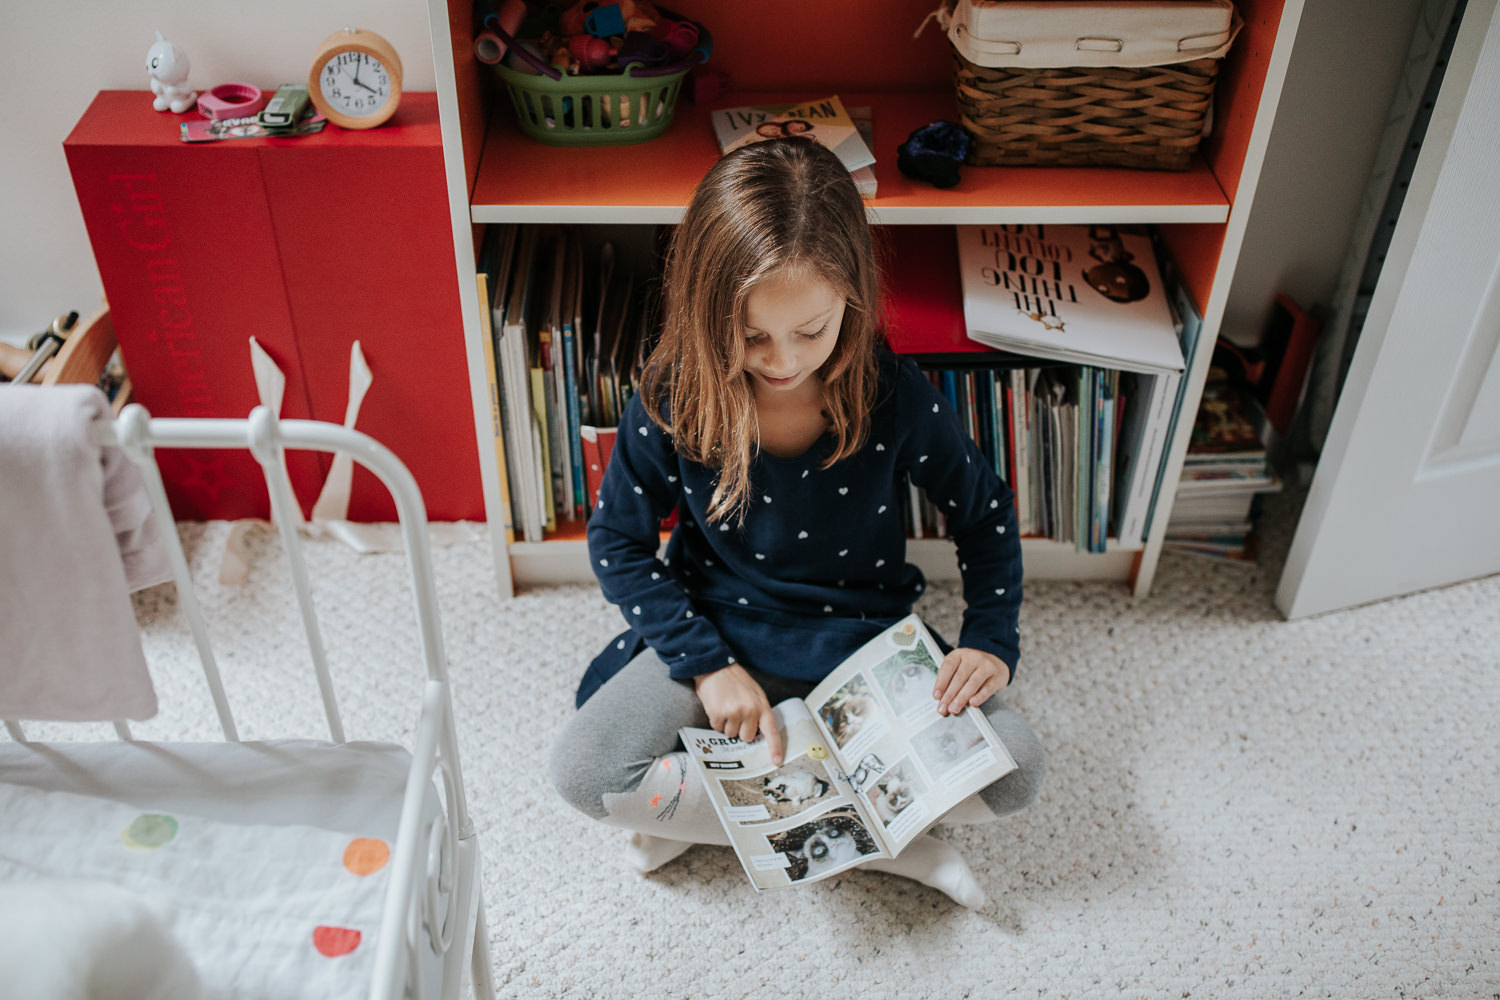 7 year old girl in polka dot dress with brown hair sitting on floor of bedroom leaning against orange and white bookcase and reading book - Markham In-Home Photos